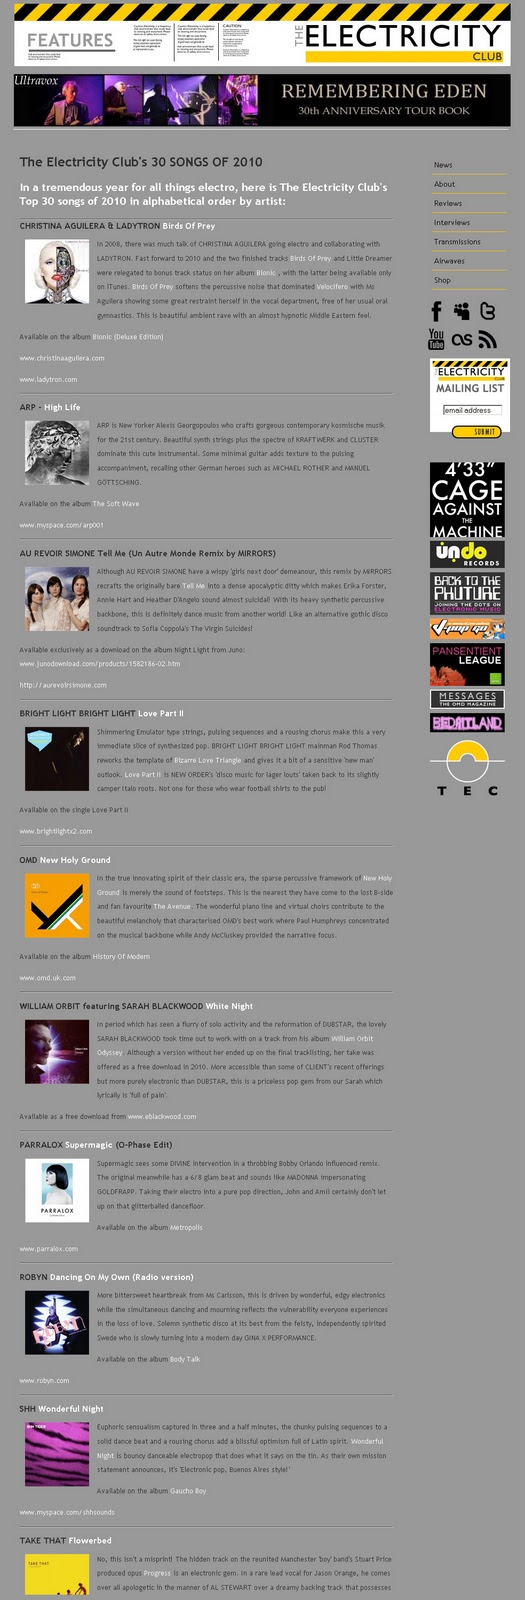 Supermagic included in the Top 30 Electro songs of 2010!